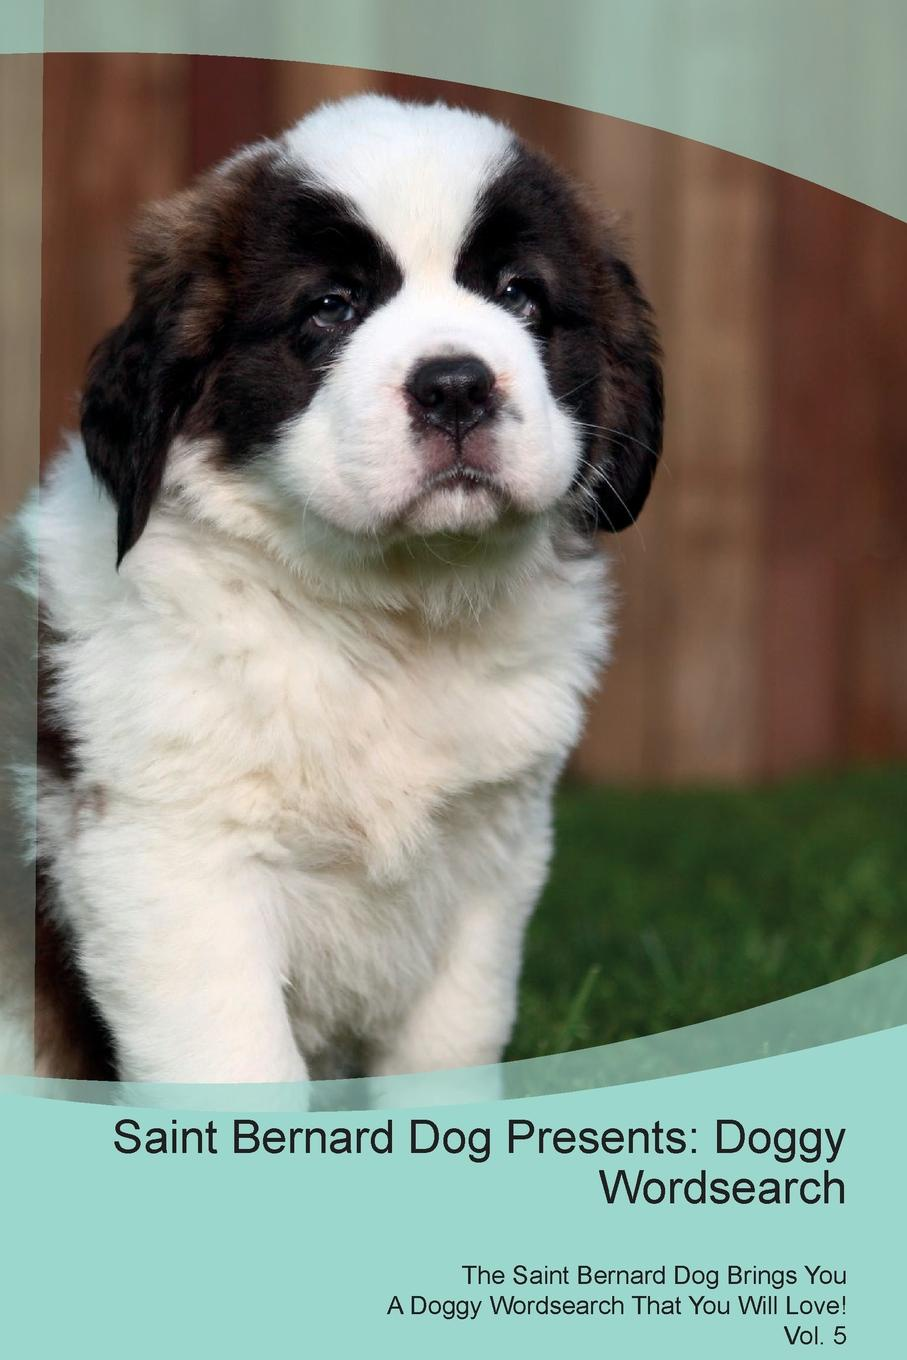 Doggy Puzzles Saint Bernard Dog Presents. Wordsearch The Brings You A That Will Love! Vol. 5